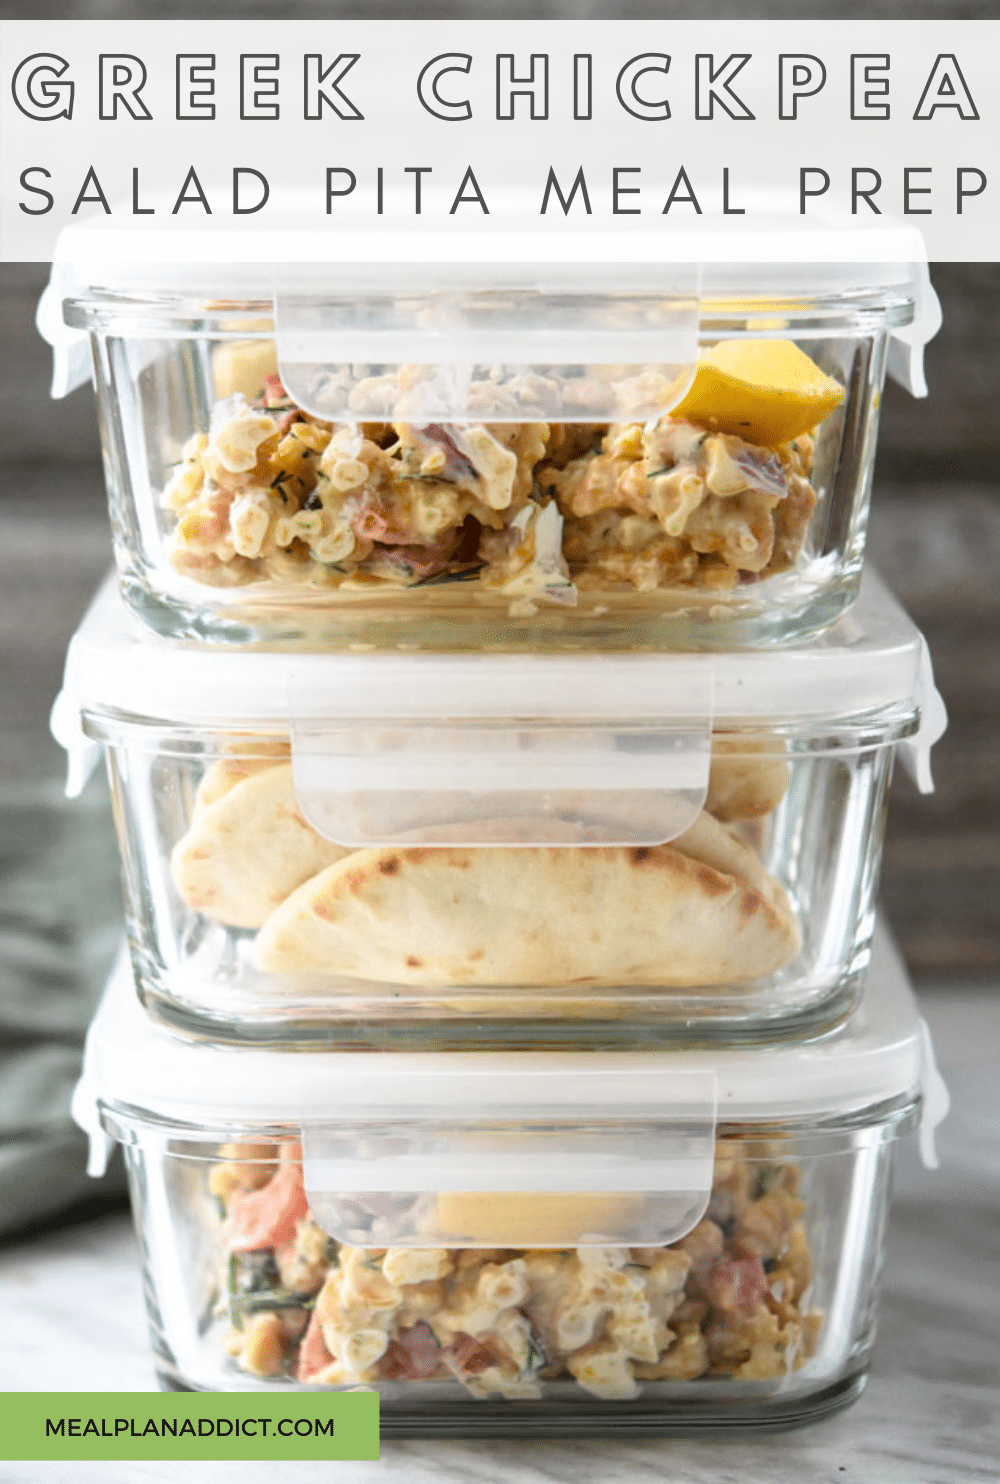 Easy Lunch Meal Prep Greek Chickpea Salad | Meal Plan Addict